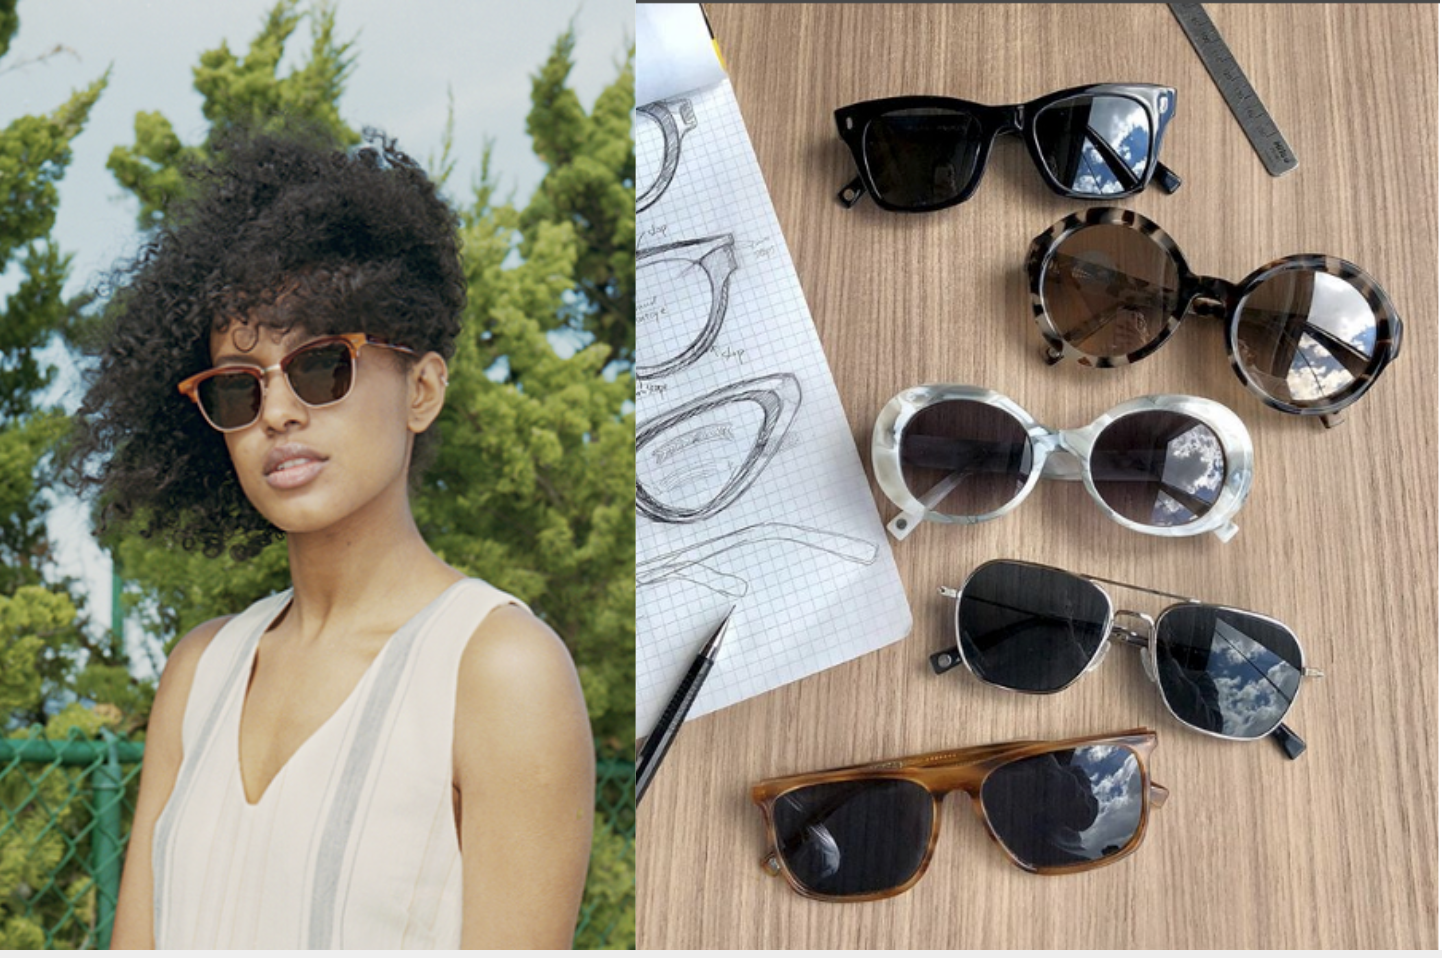 18 Of The Best Places To Buy Sunglasses Online